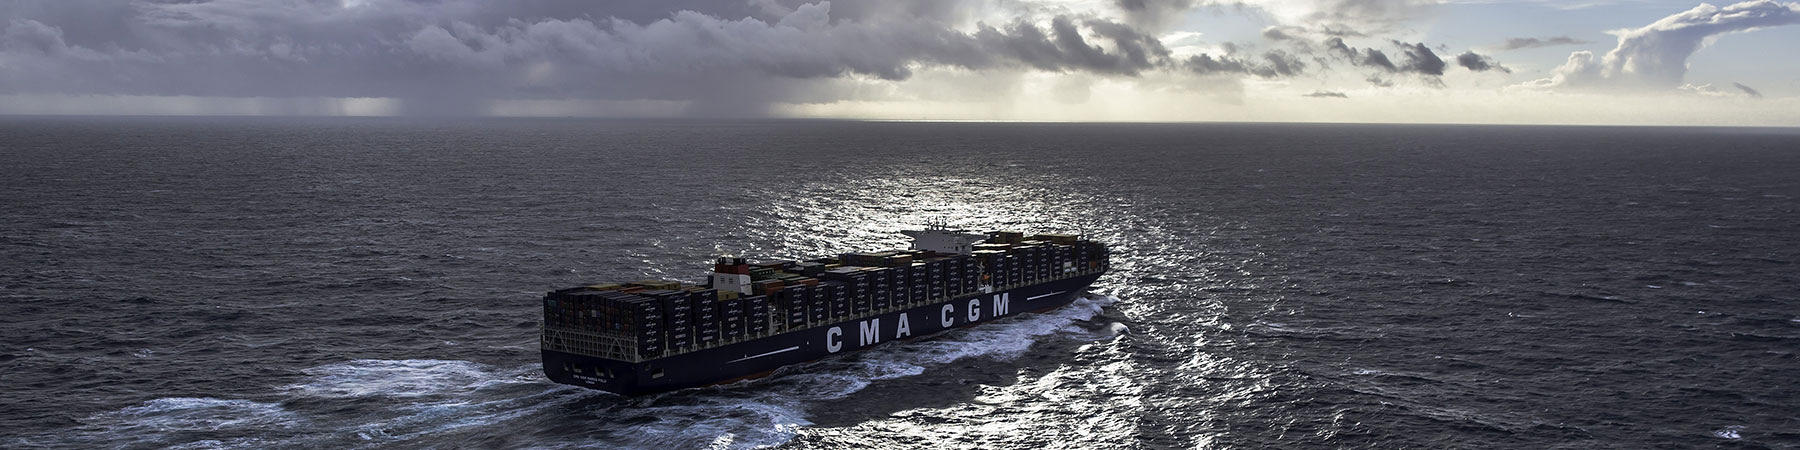 CMA CGM Marco Polo - Photo Pêcheur d'Images